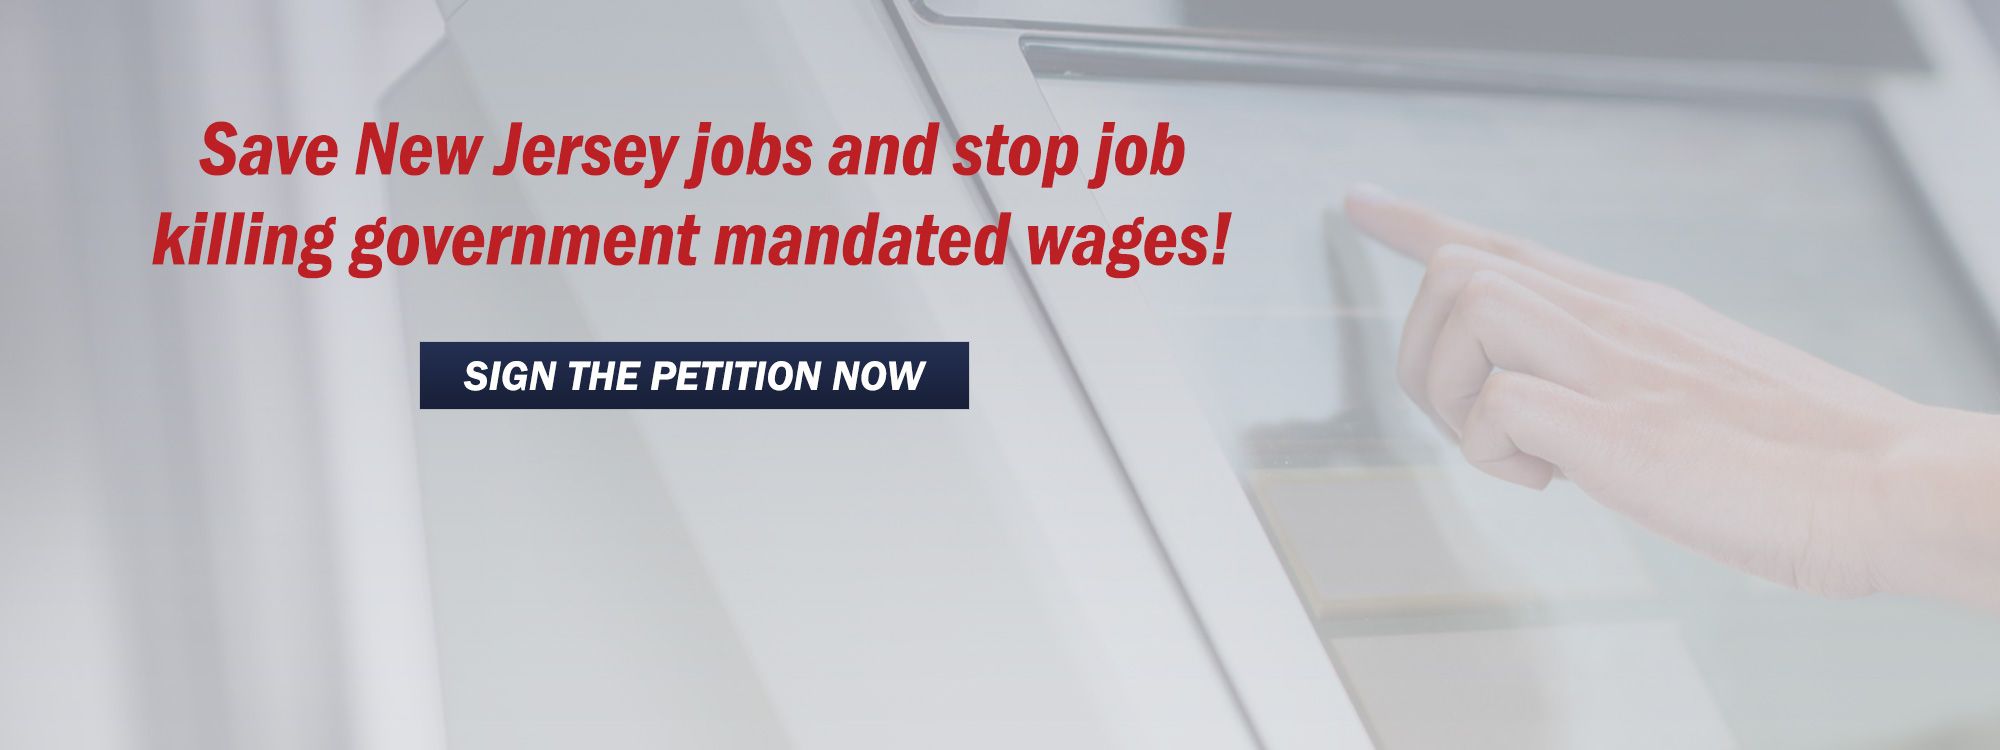 Save New Jersey jobs and stop job killing government mandated wages!